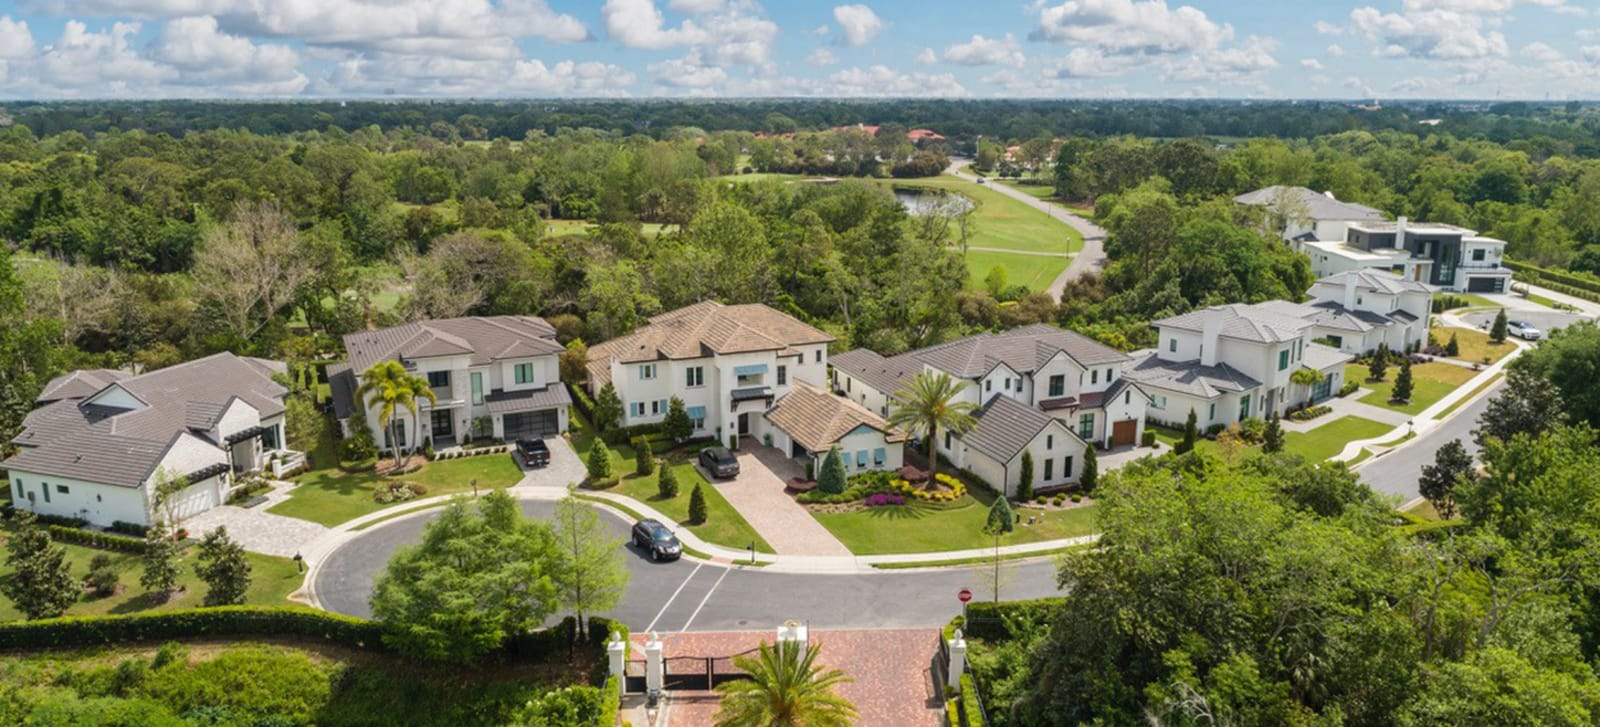 Find Luxury Real Estate in Central Florida | Corcoran Premier Realty